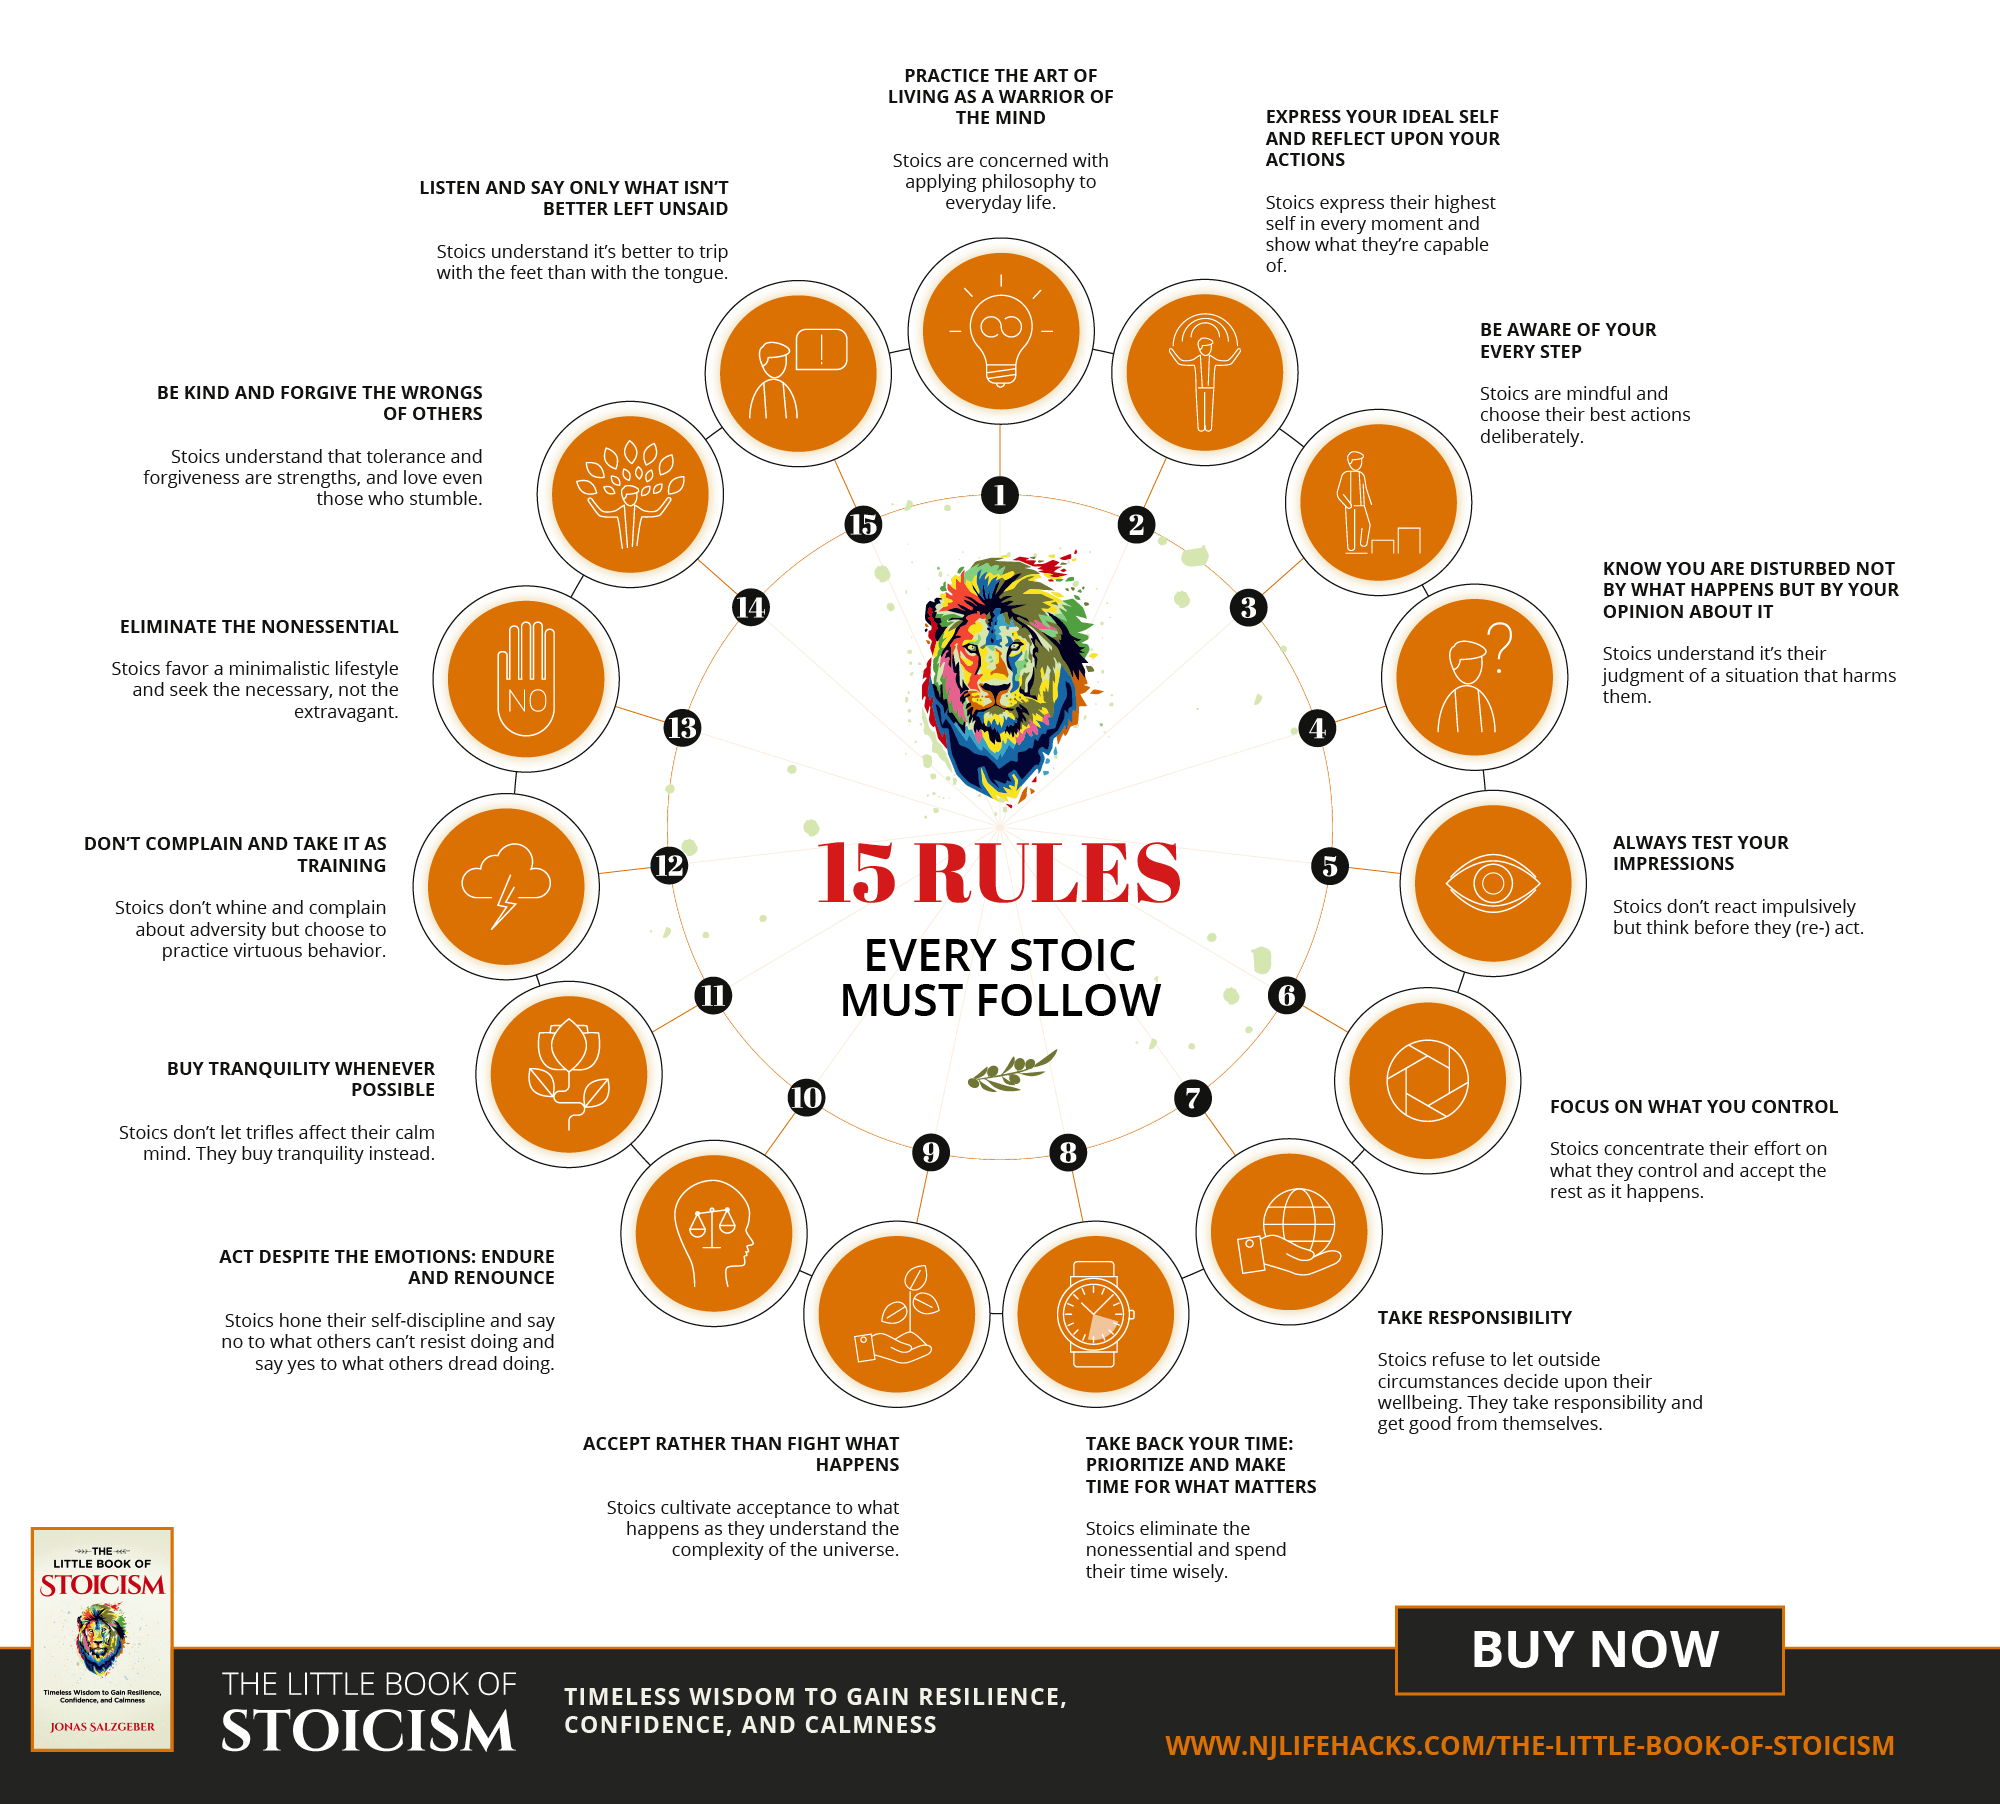 16 Rules Every Stoic Must Follow Infographic